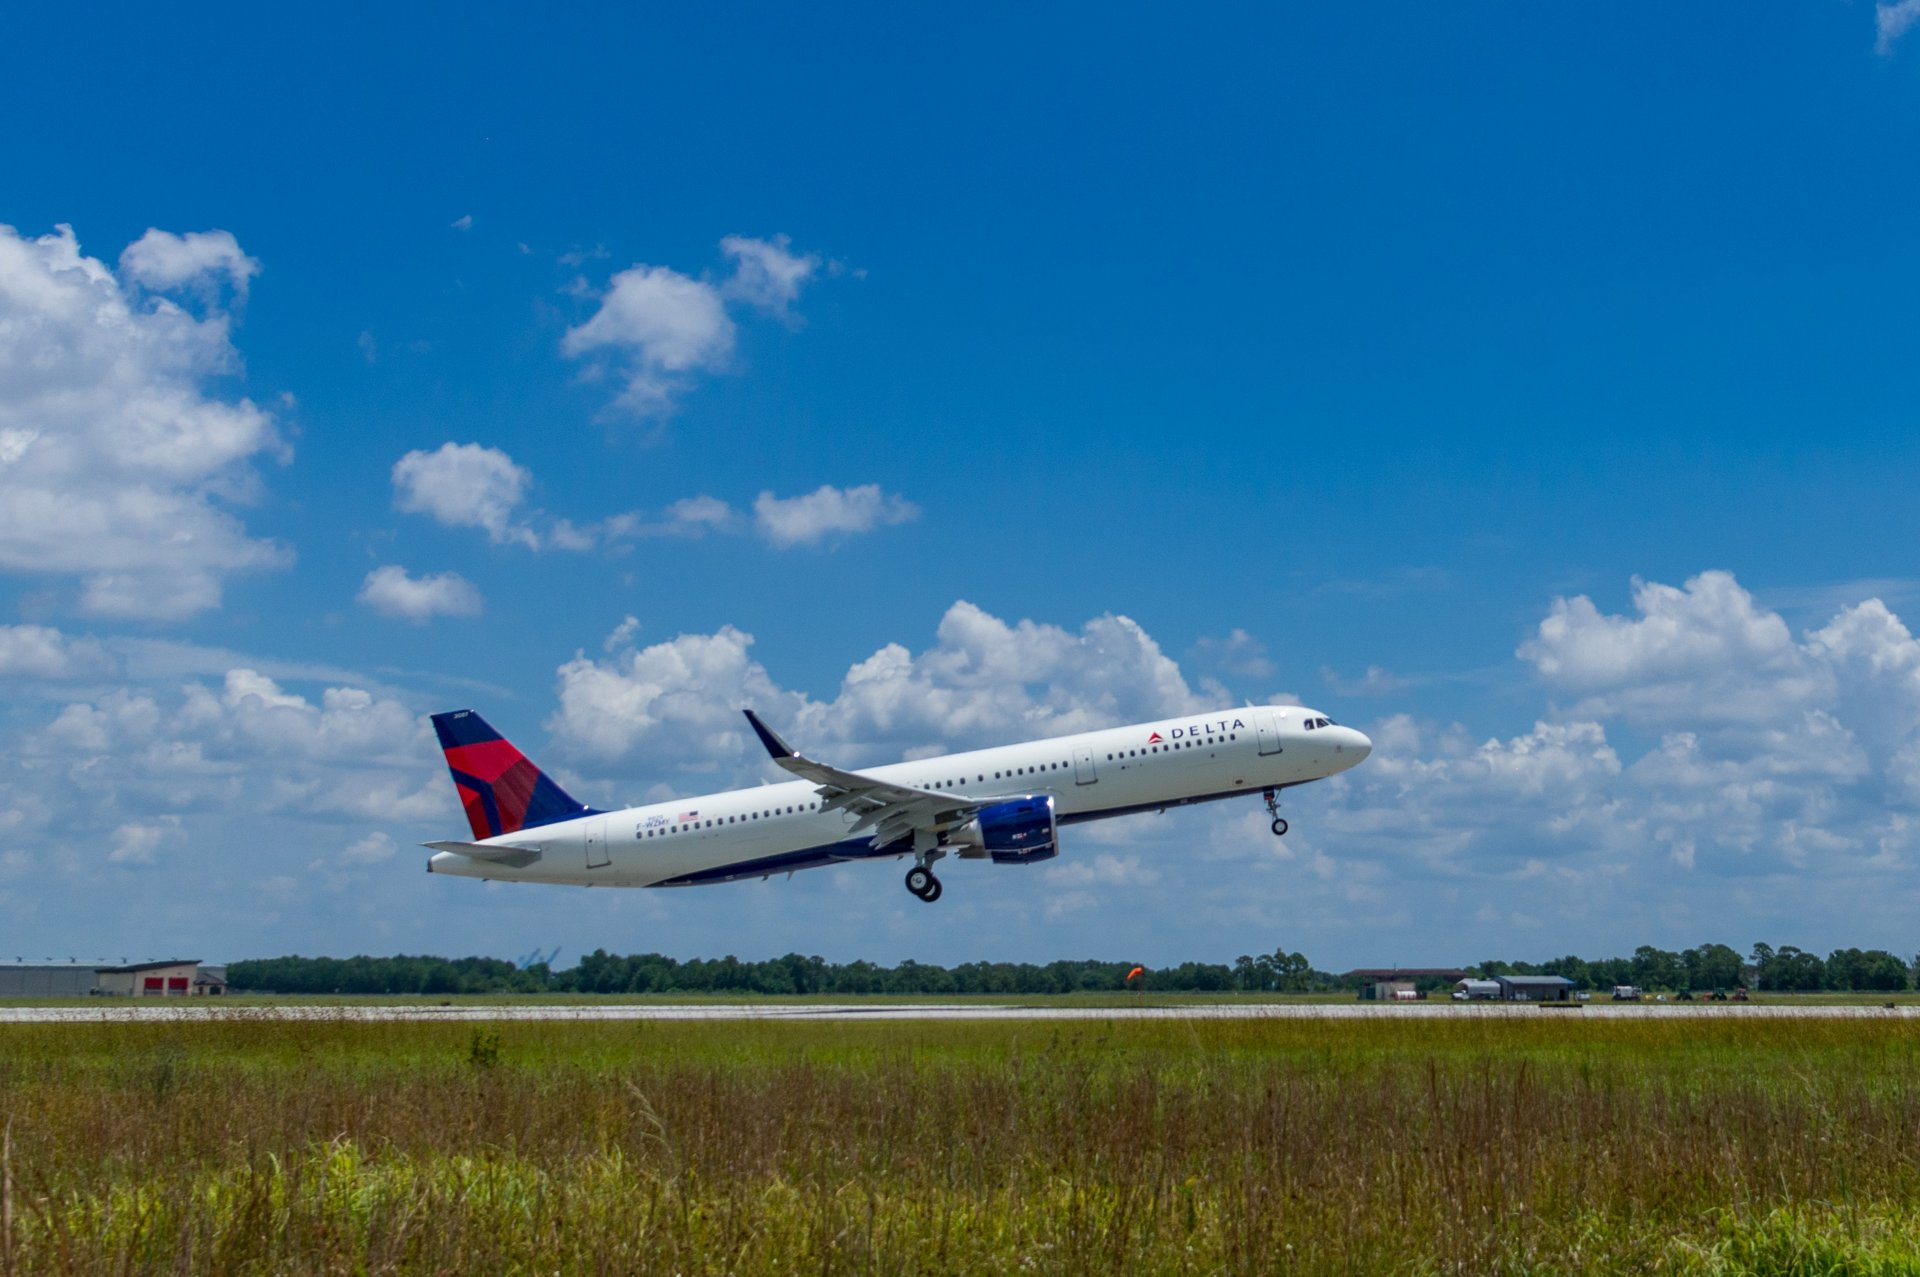 Airbus has delivered Delta Air Lines' 50th A320 Family jetliner produced in the U.S. manufacturing facility at Mobile, Alabama; this aircraft – an A321 – is shown during a pre-delivery test flight